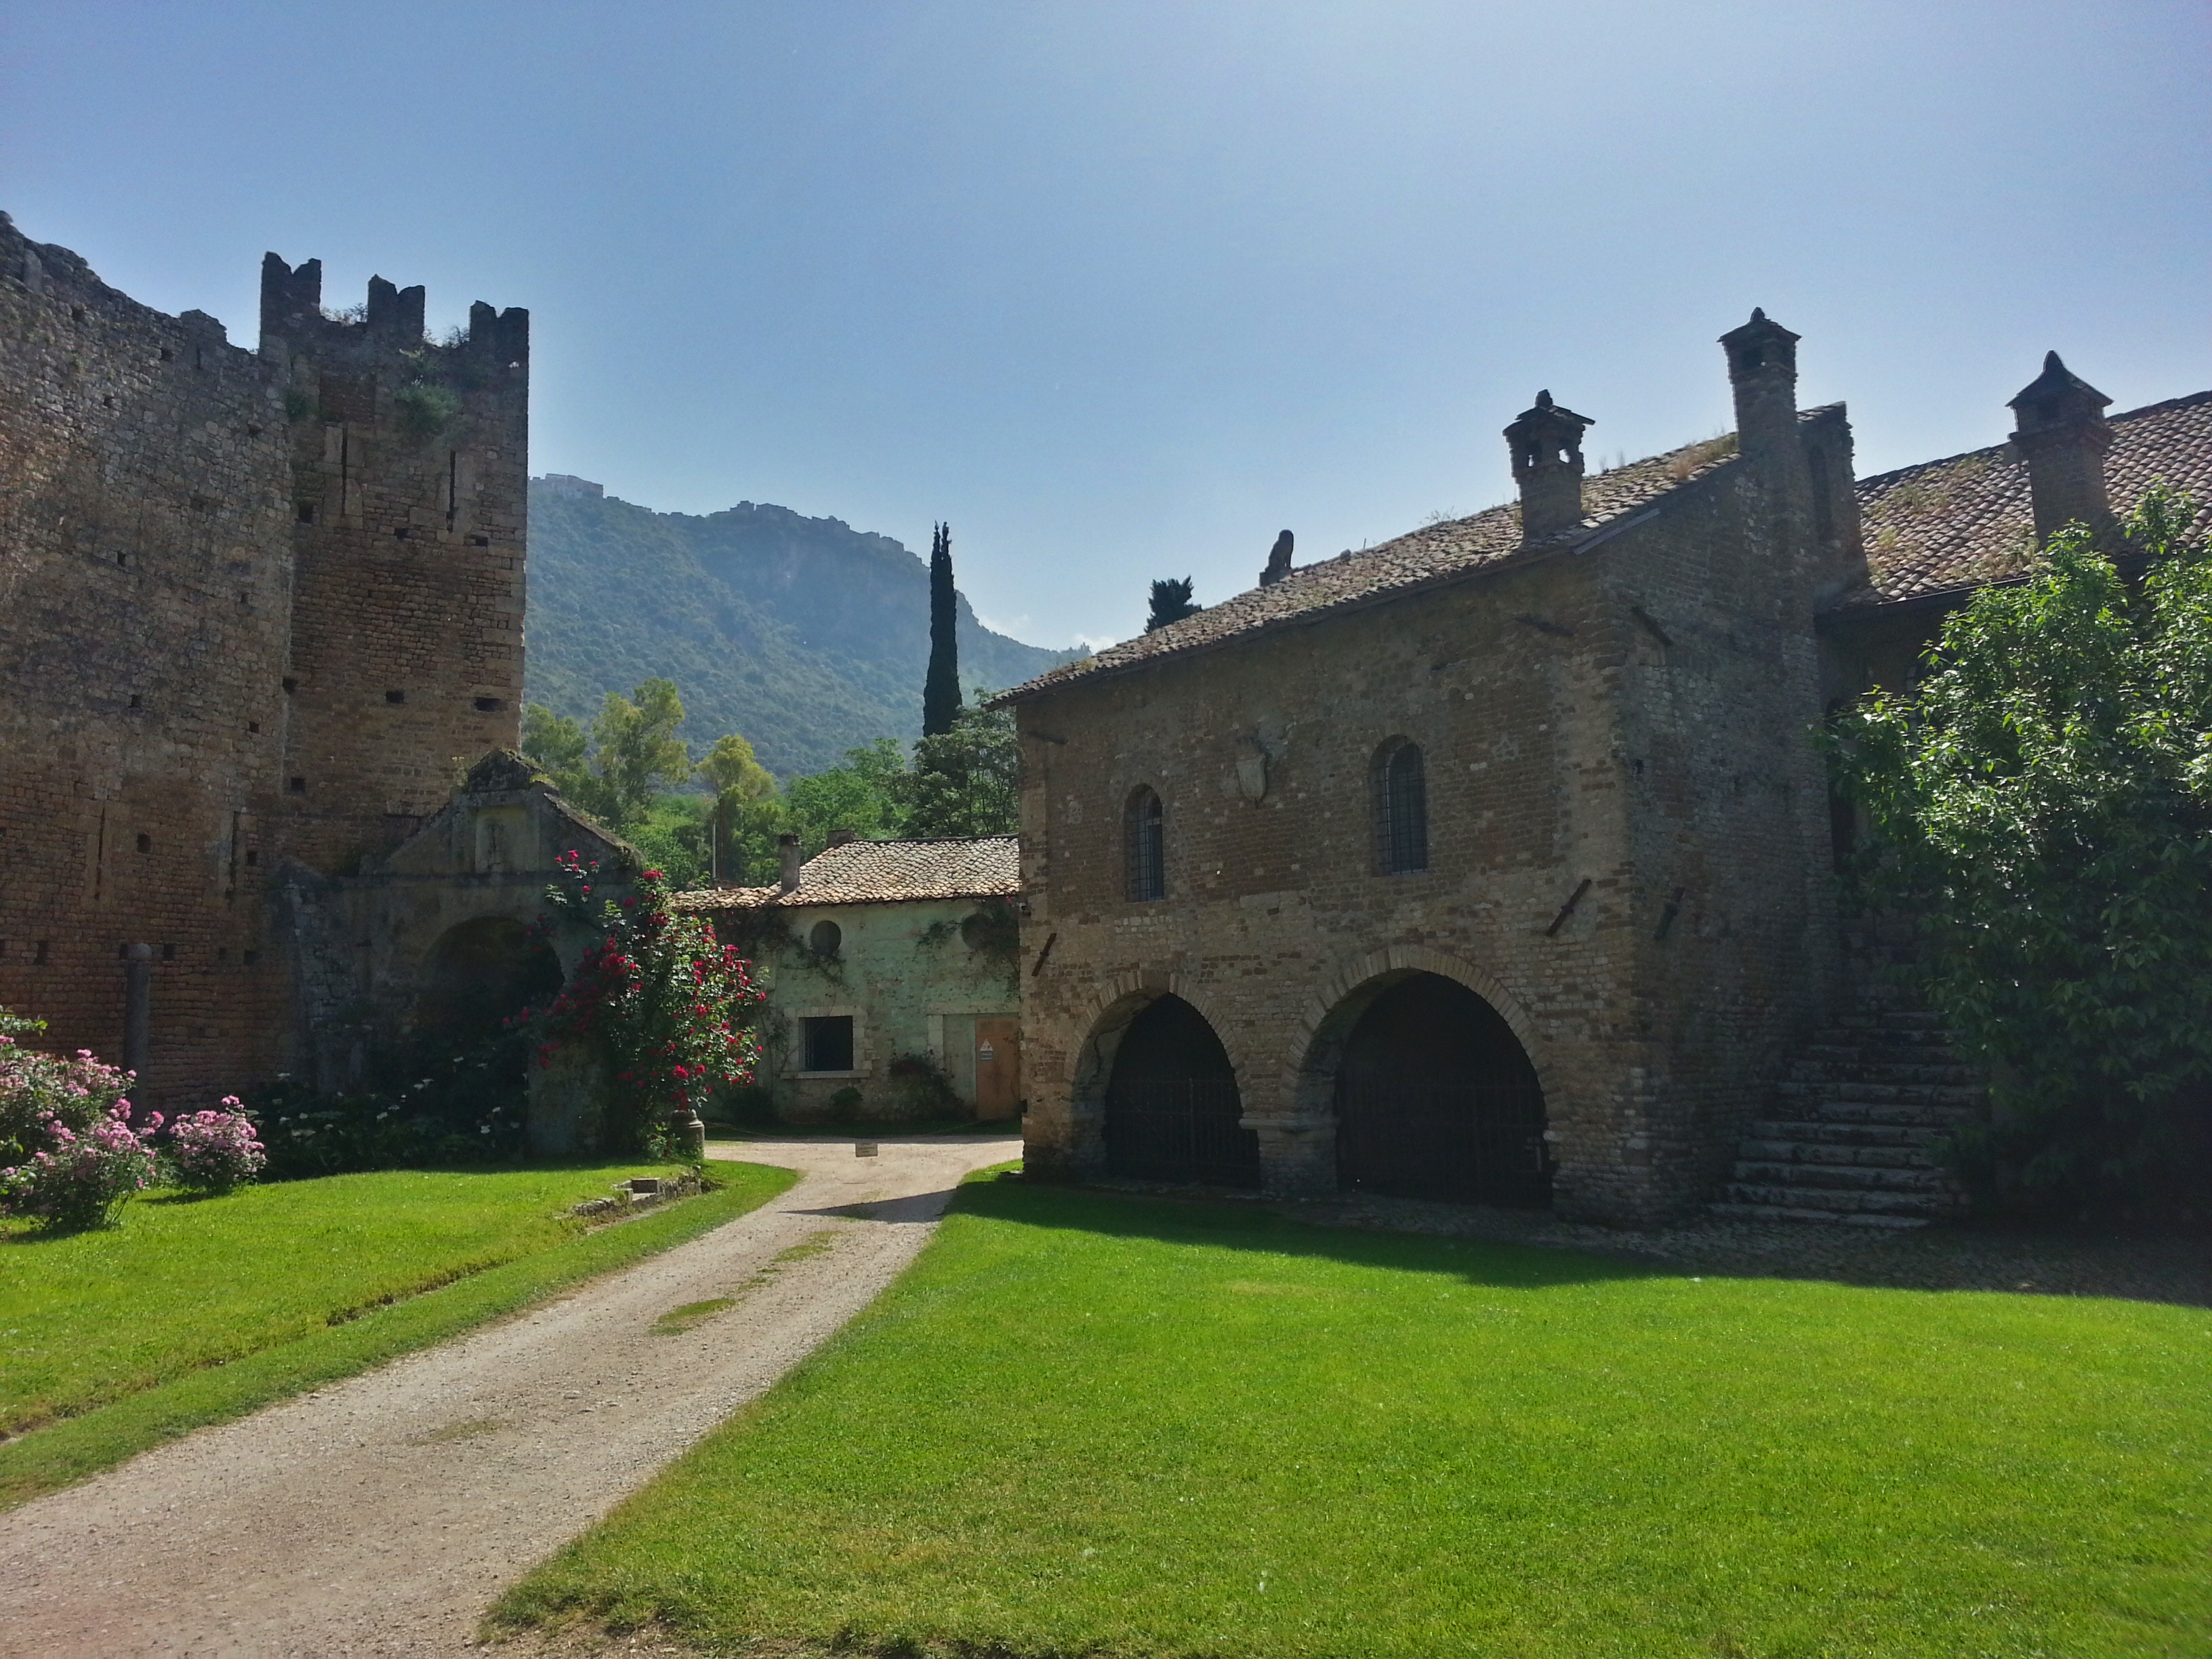 An ideal daytrip from Rome, the Gardens of Ninfa are one of Italy's most beautiful parks. Read how to get to Ninfa, 2017 prices, and opening times.